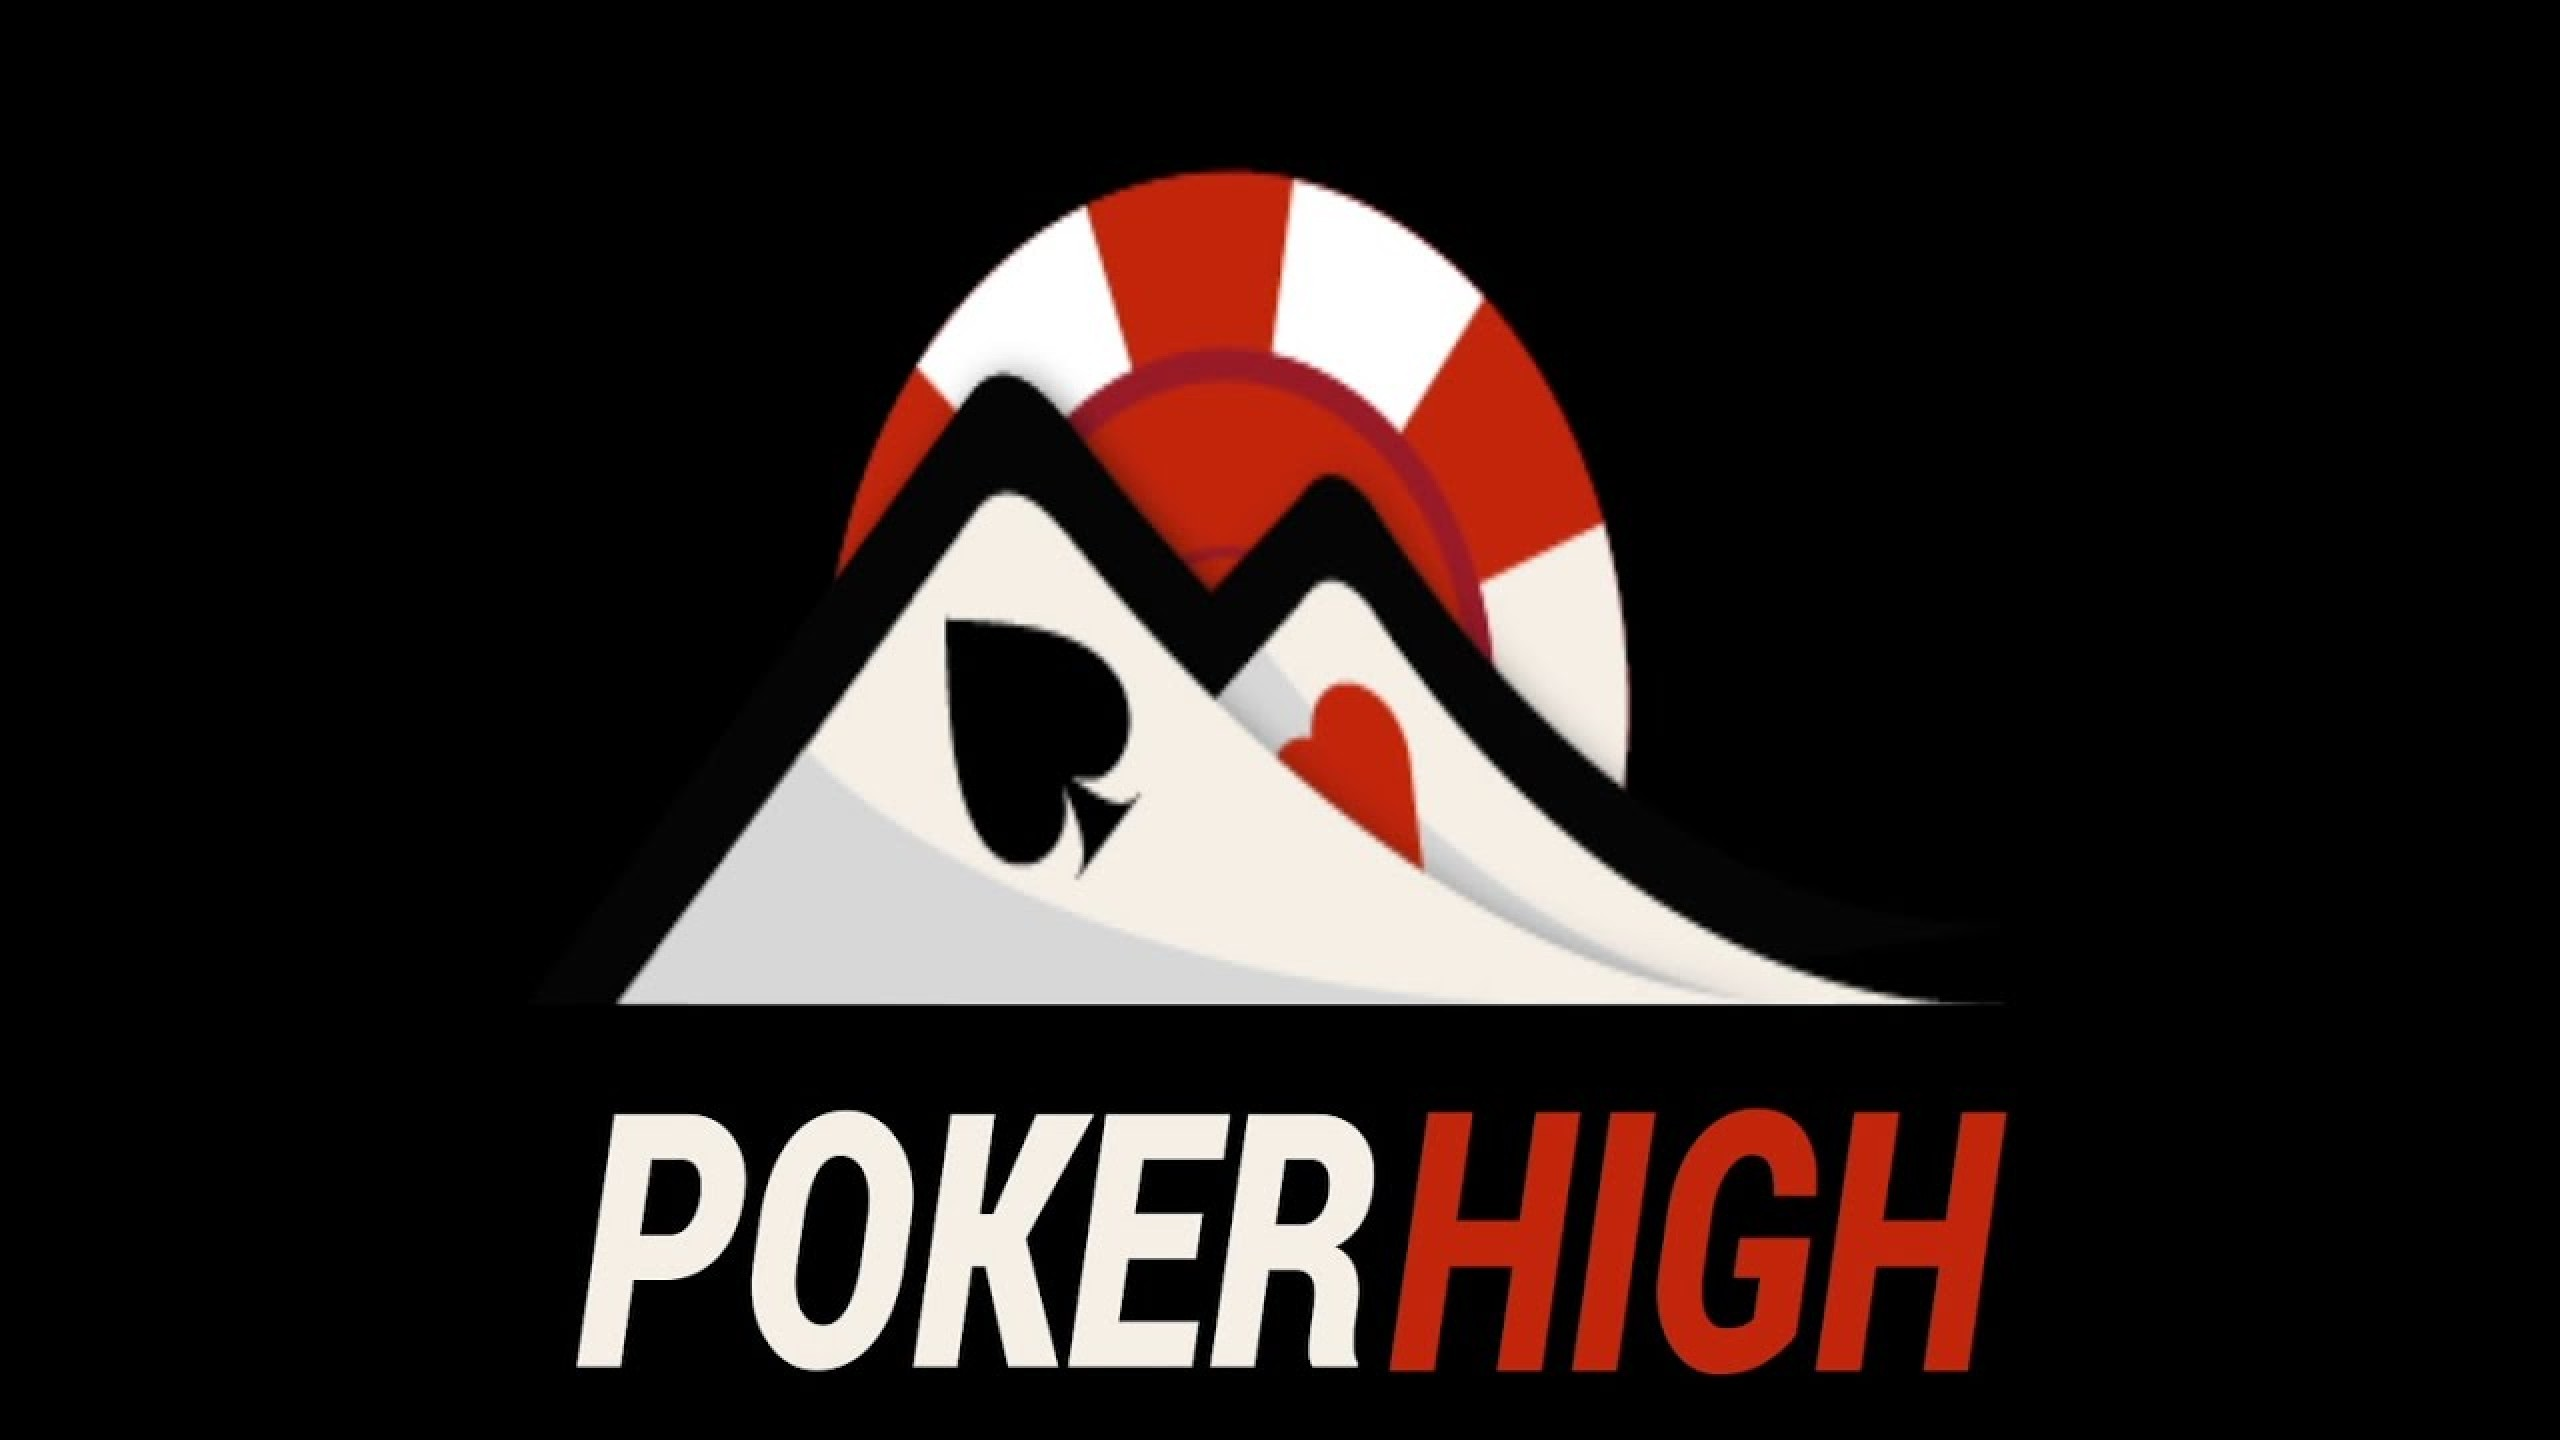 Quadnet Poker network introduces a brand new online poker room